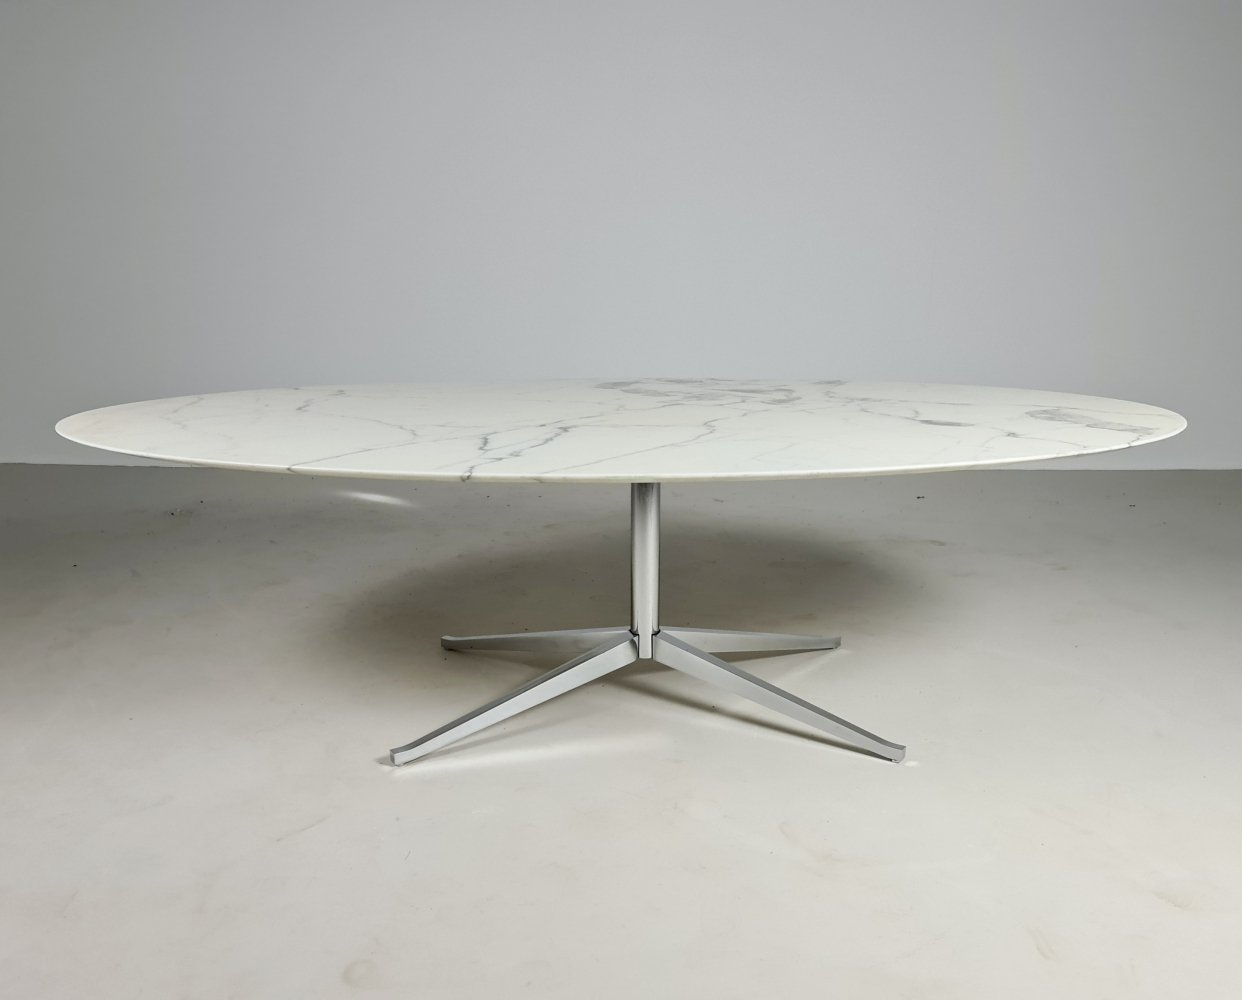 Large marble table by Florence Knoll for Knoll International, 1970s